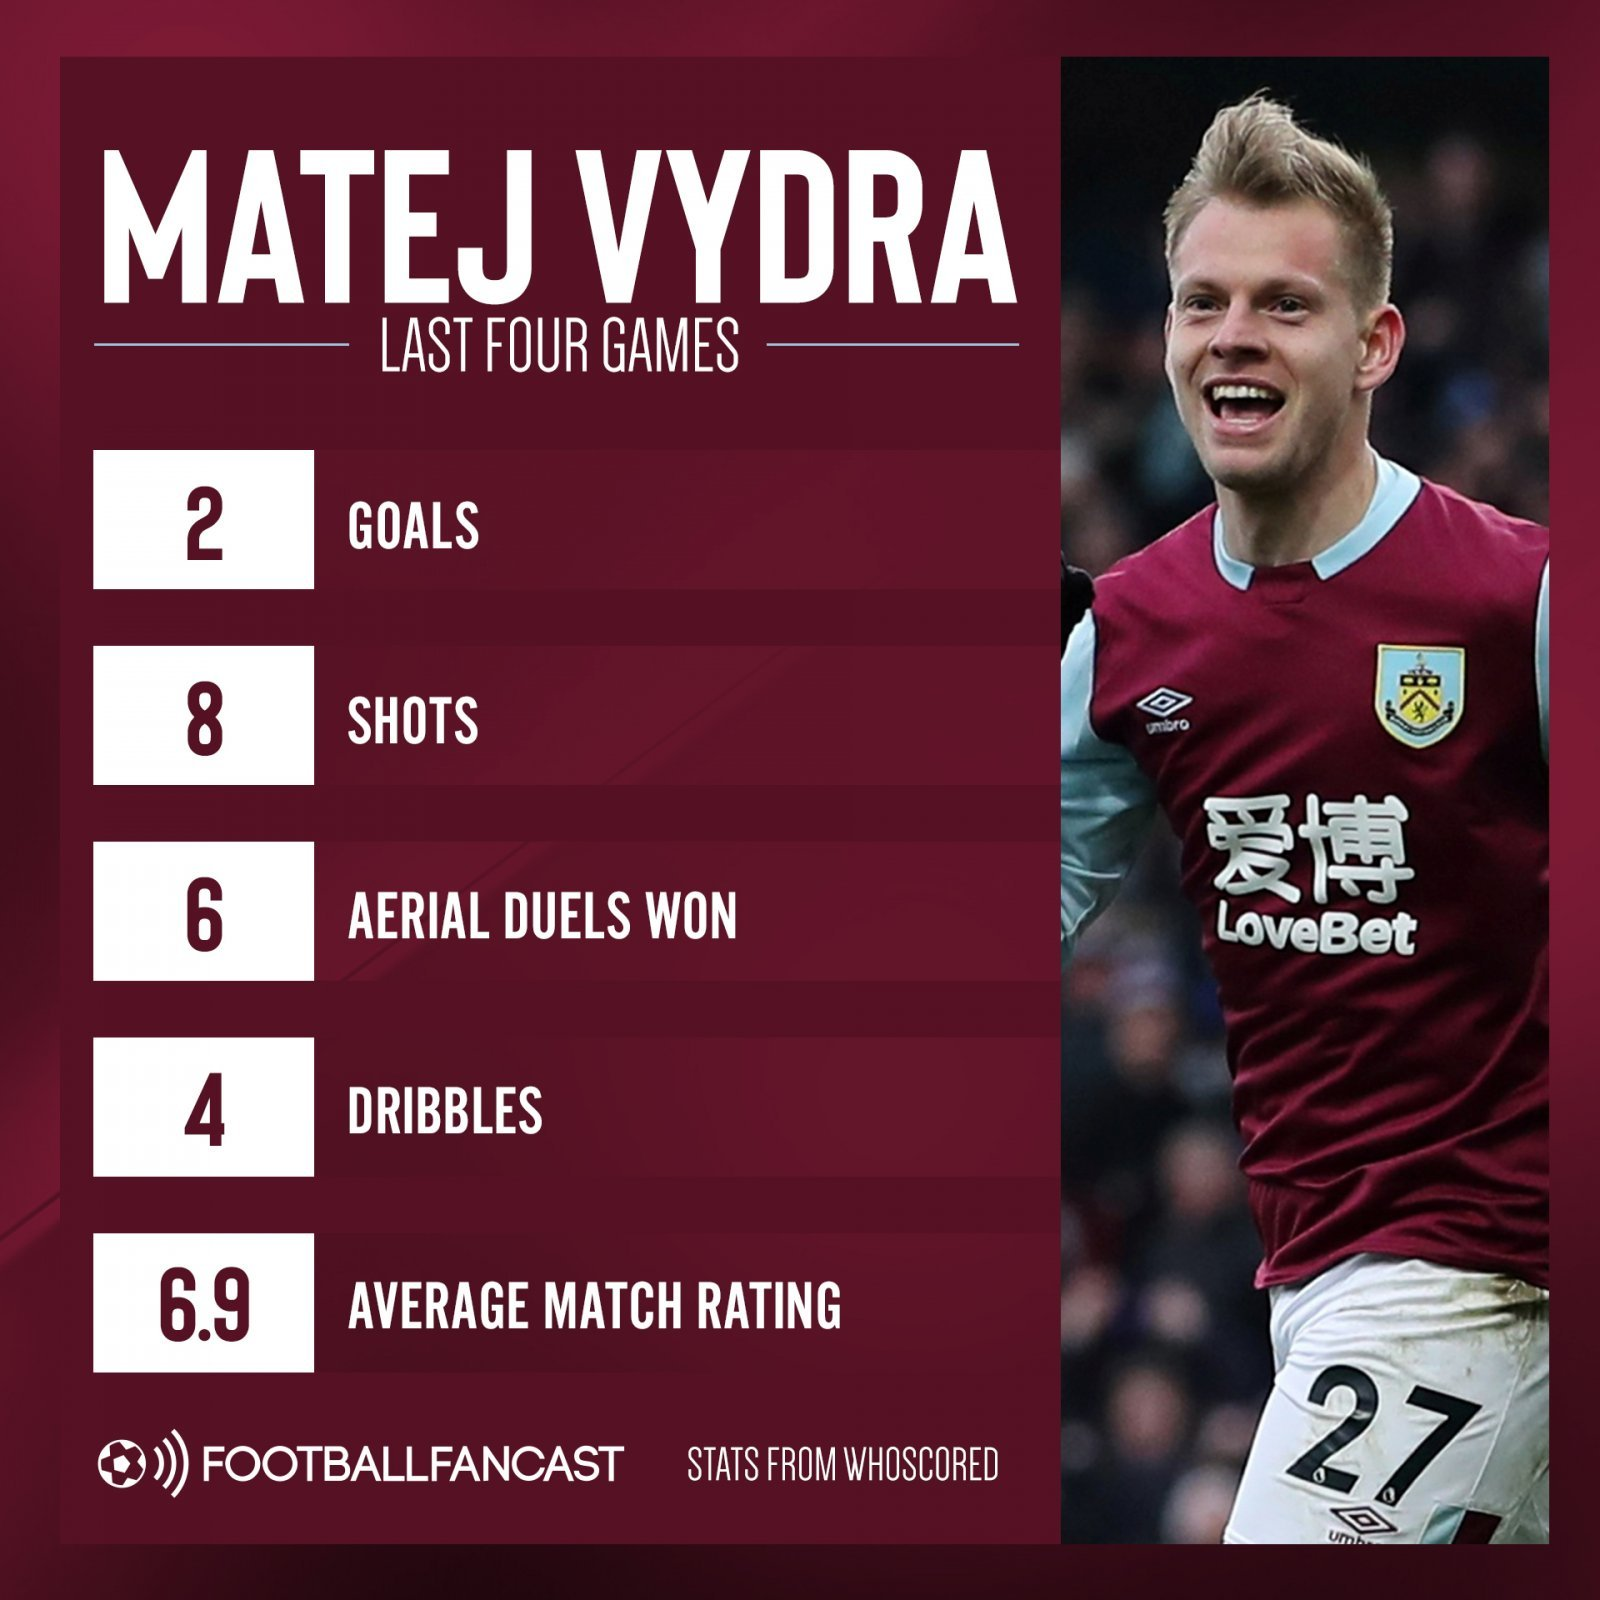 Matej Vydra last four games - Rangers should be kicking themselves after failing to land tricky £4.5m-rated ace - opinion